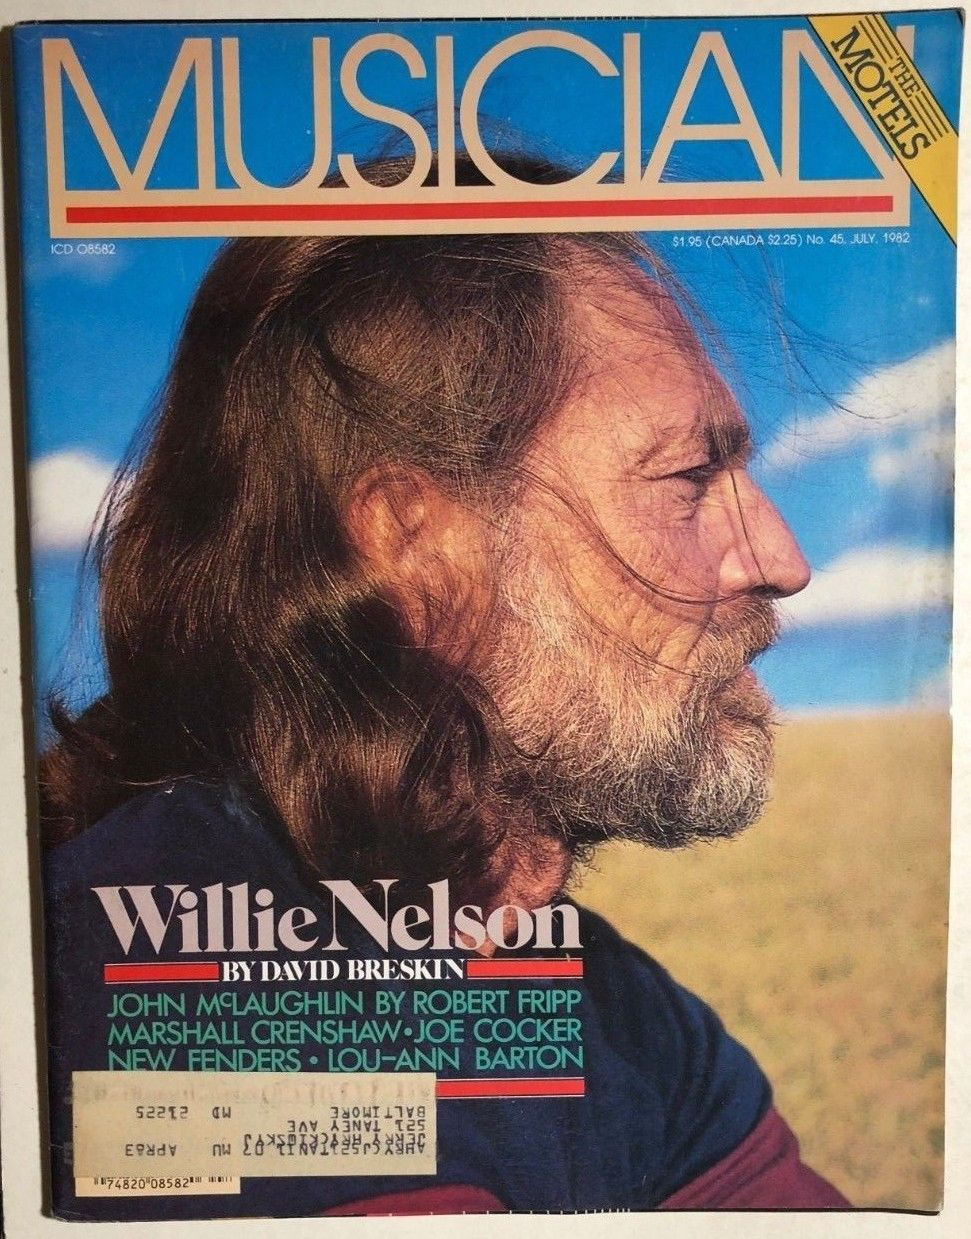 Primary image for MUSICIAN Magazine #45 July 1982 Willie Nelson